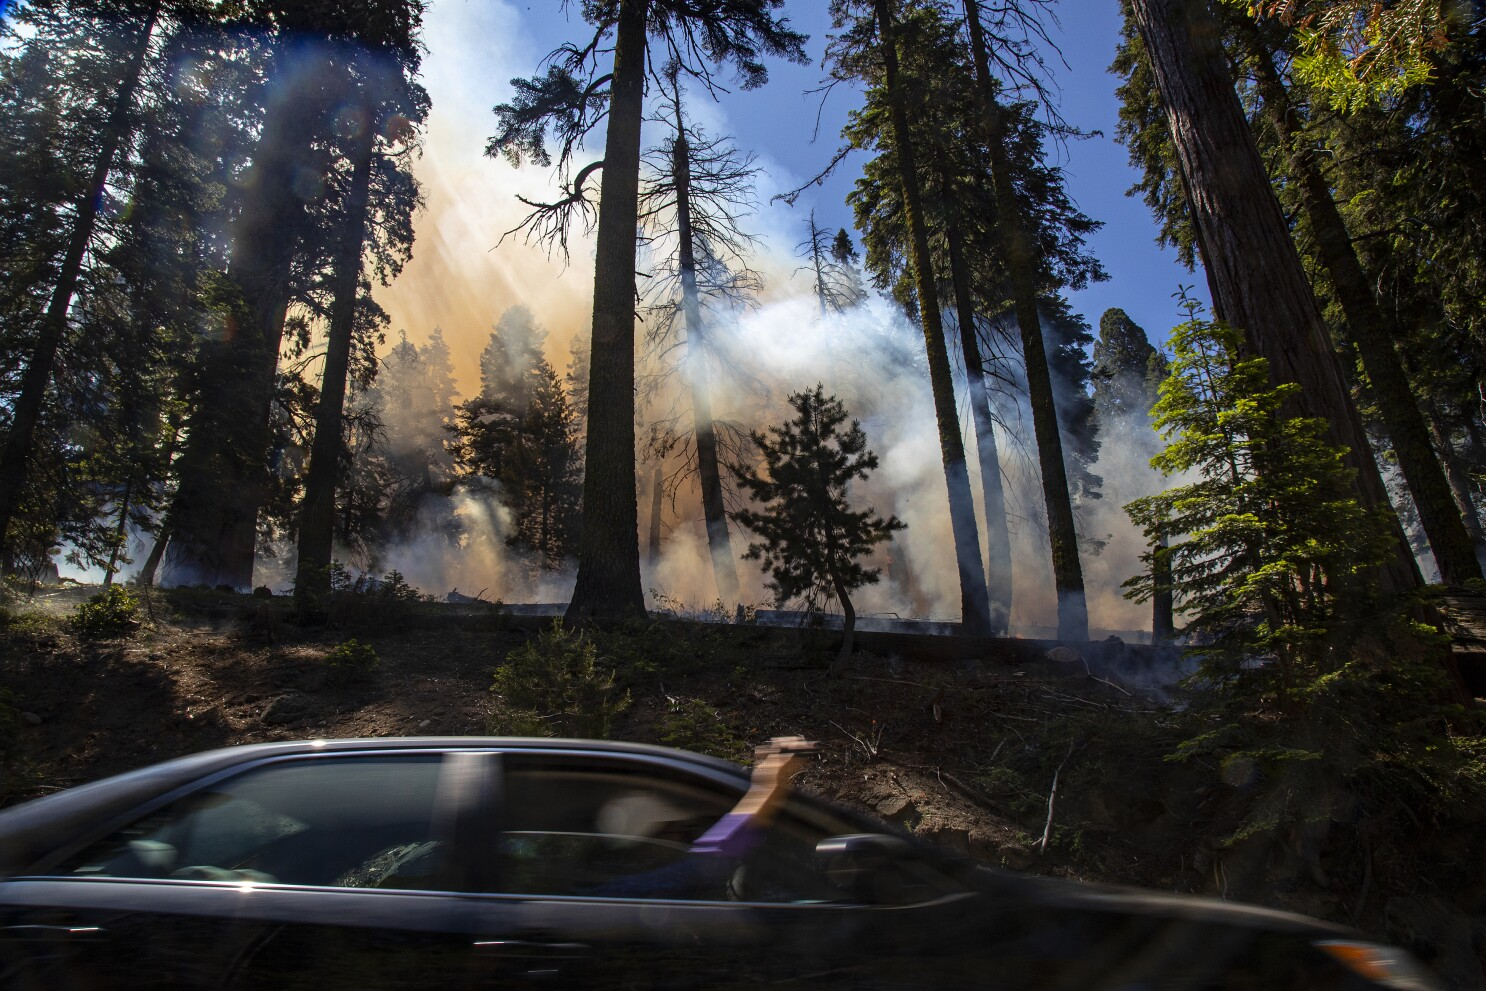 California fire mystery: No major summer brush fires after years of record destruction